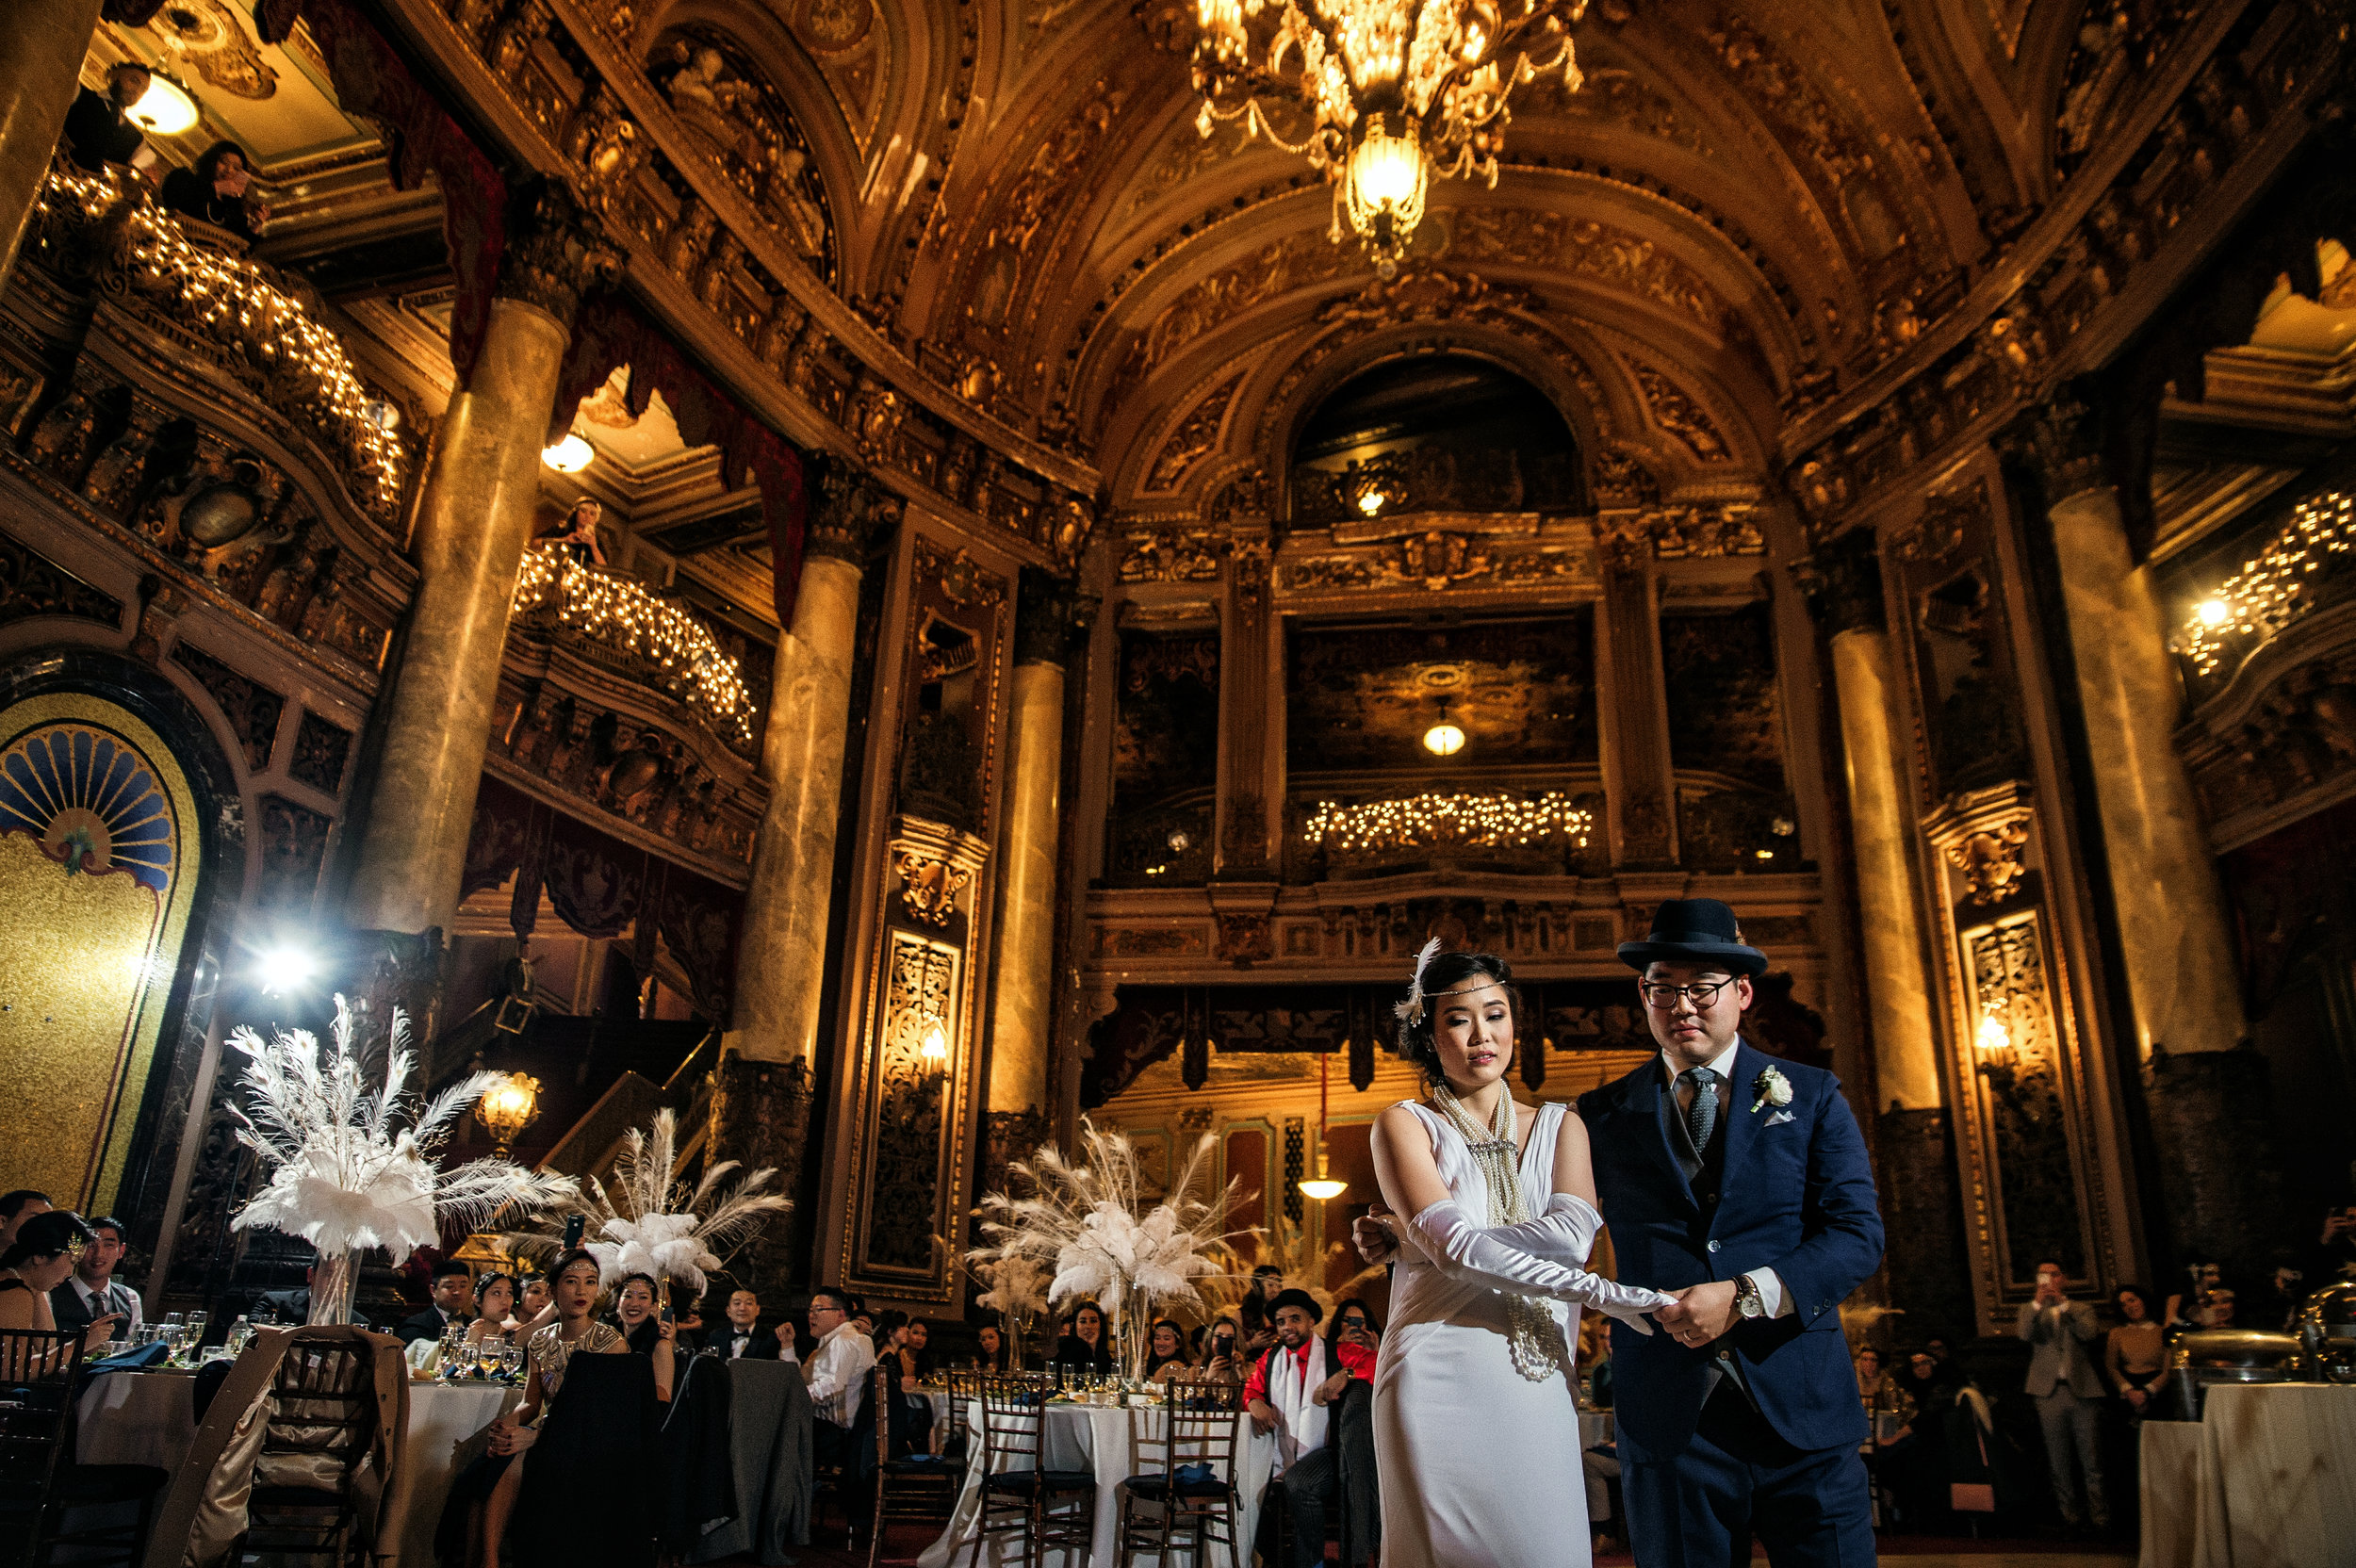 Beautifully picture of 20's Inspired bride and groom dancing at reception at historic Loew's Theater in Jersey City